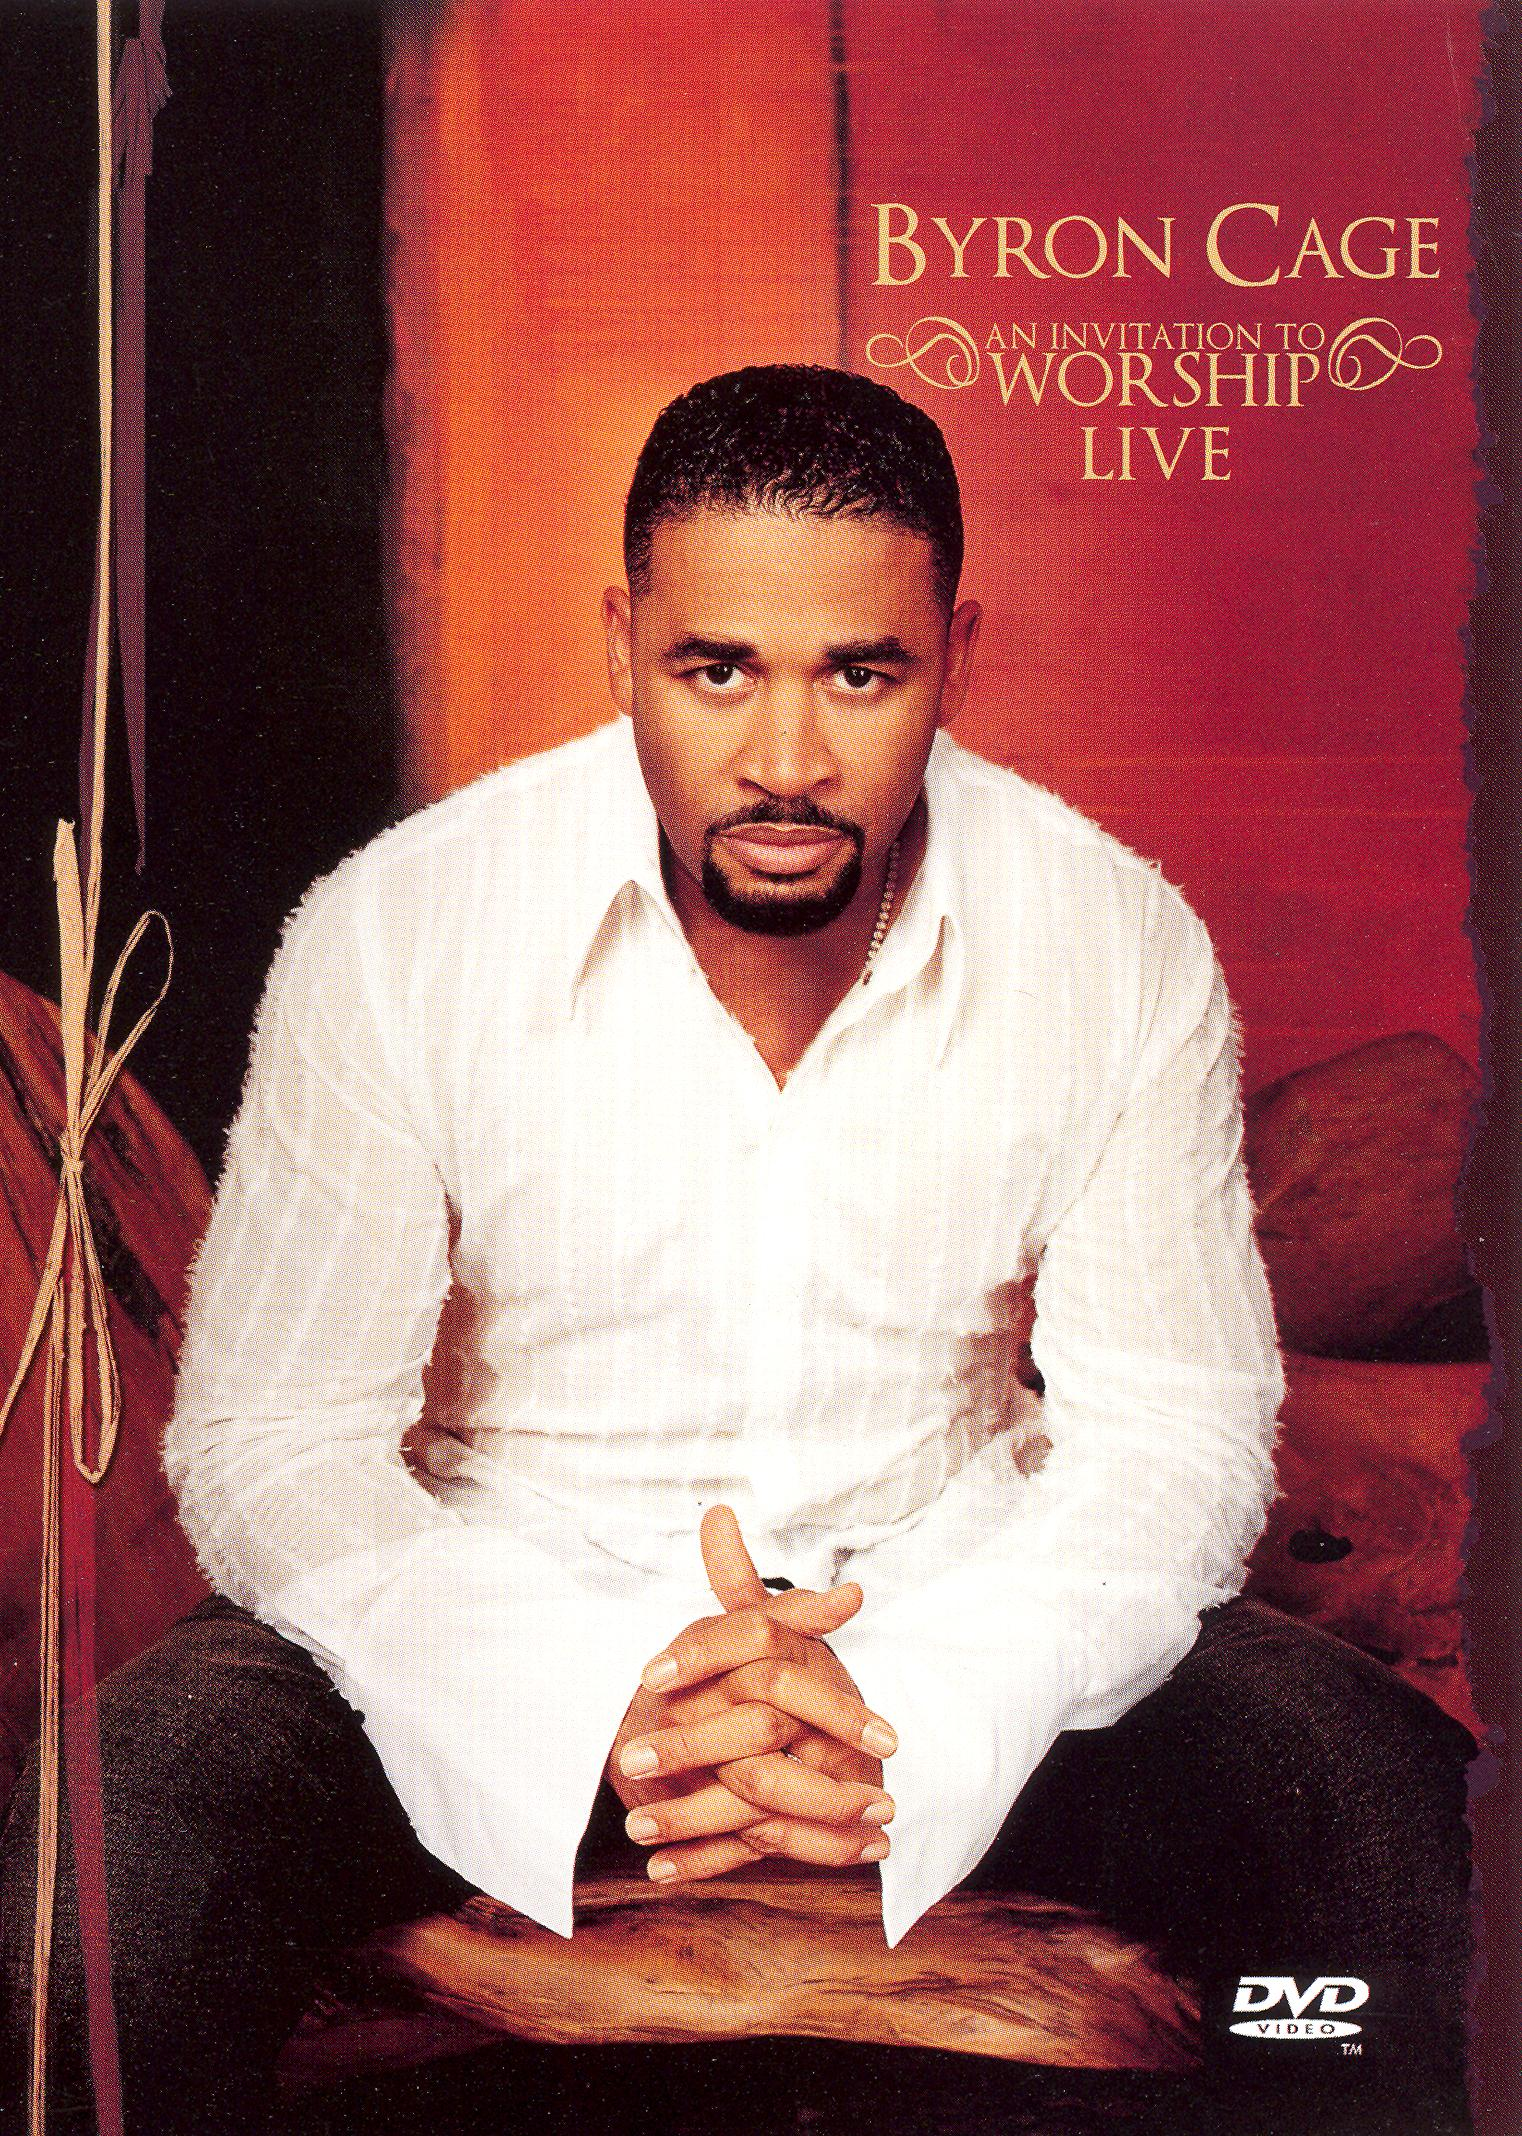 Byron Cage: An Invitation to Worship Live